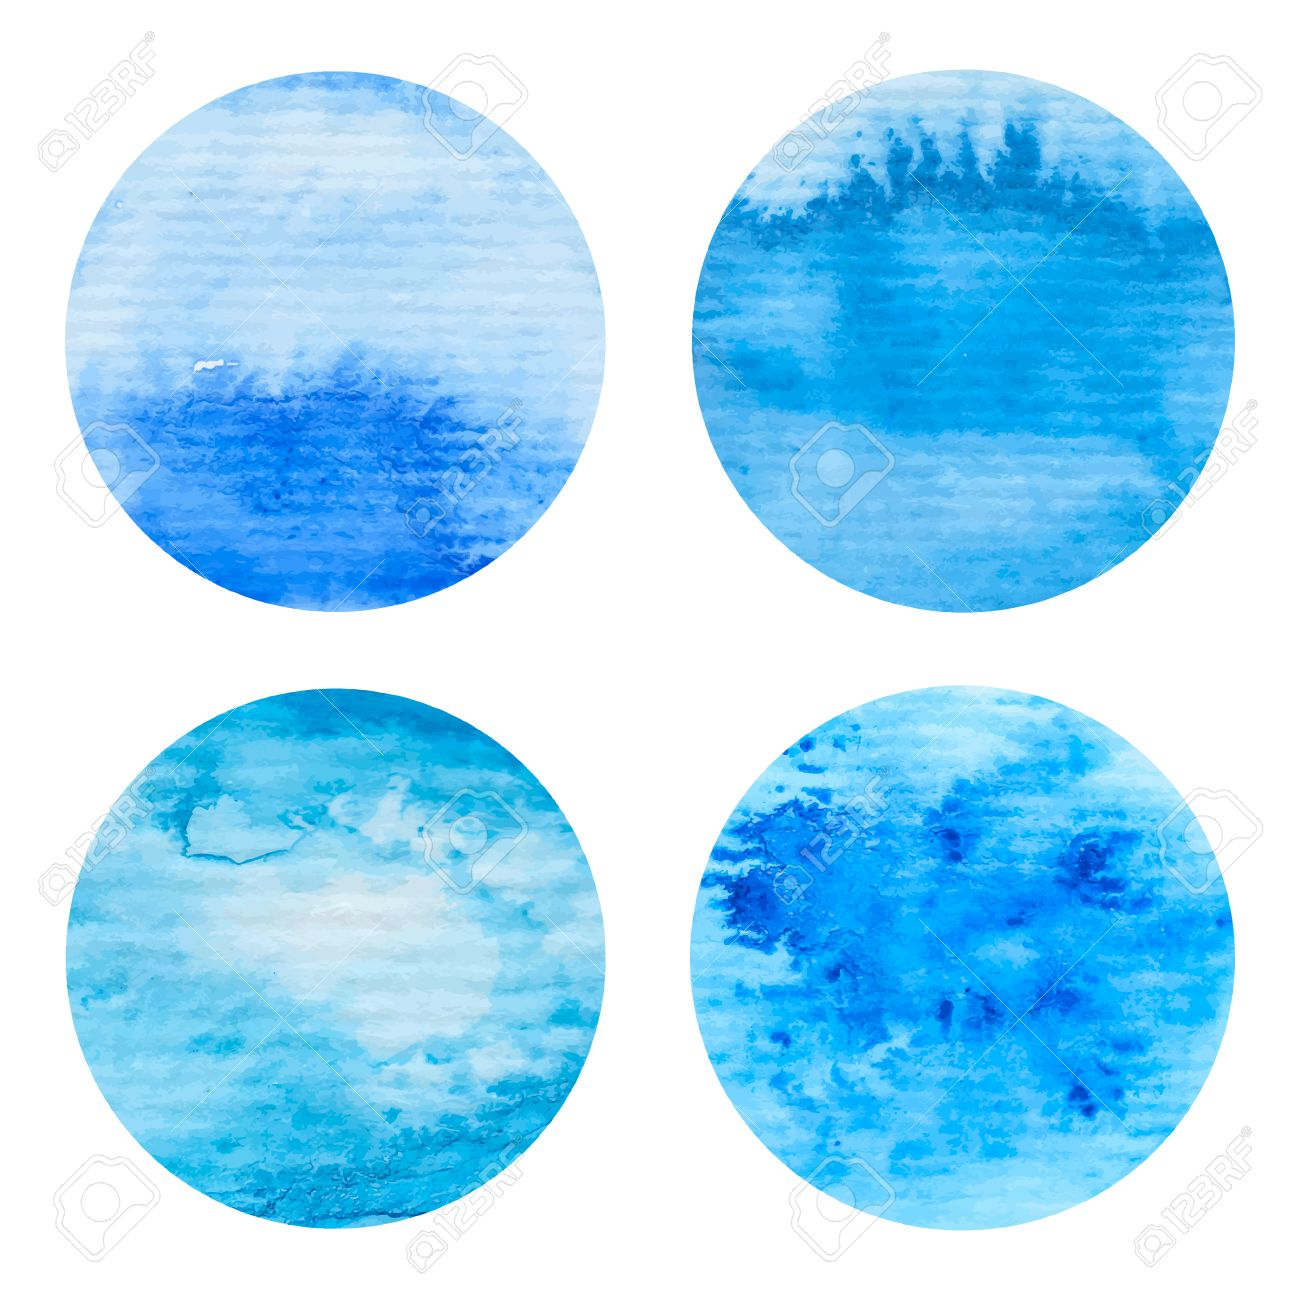 Nautical Paint Colors Hand Painted Watercolor Circles Set Nautical Sea Texture Blue